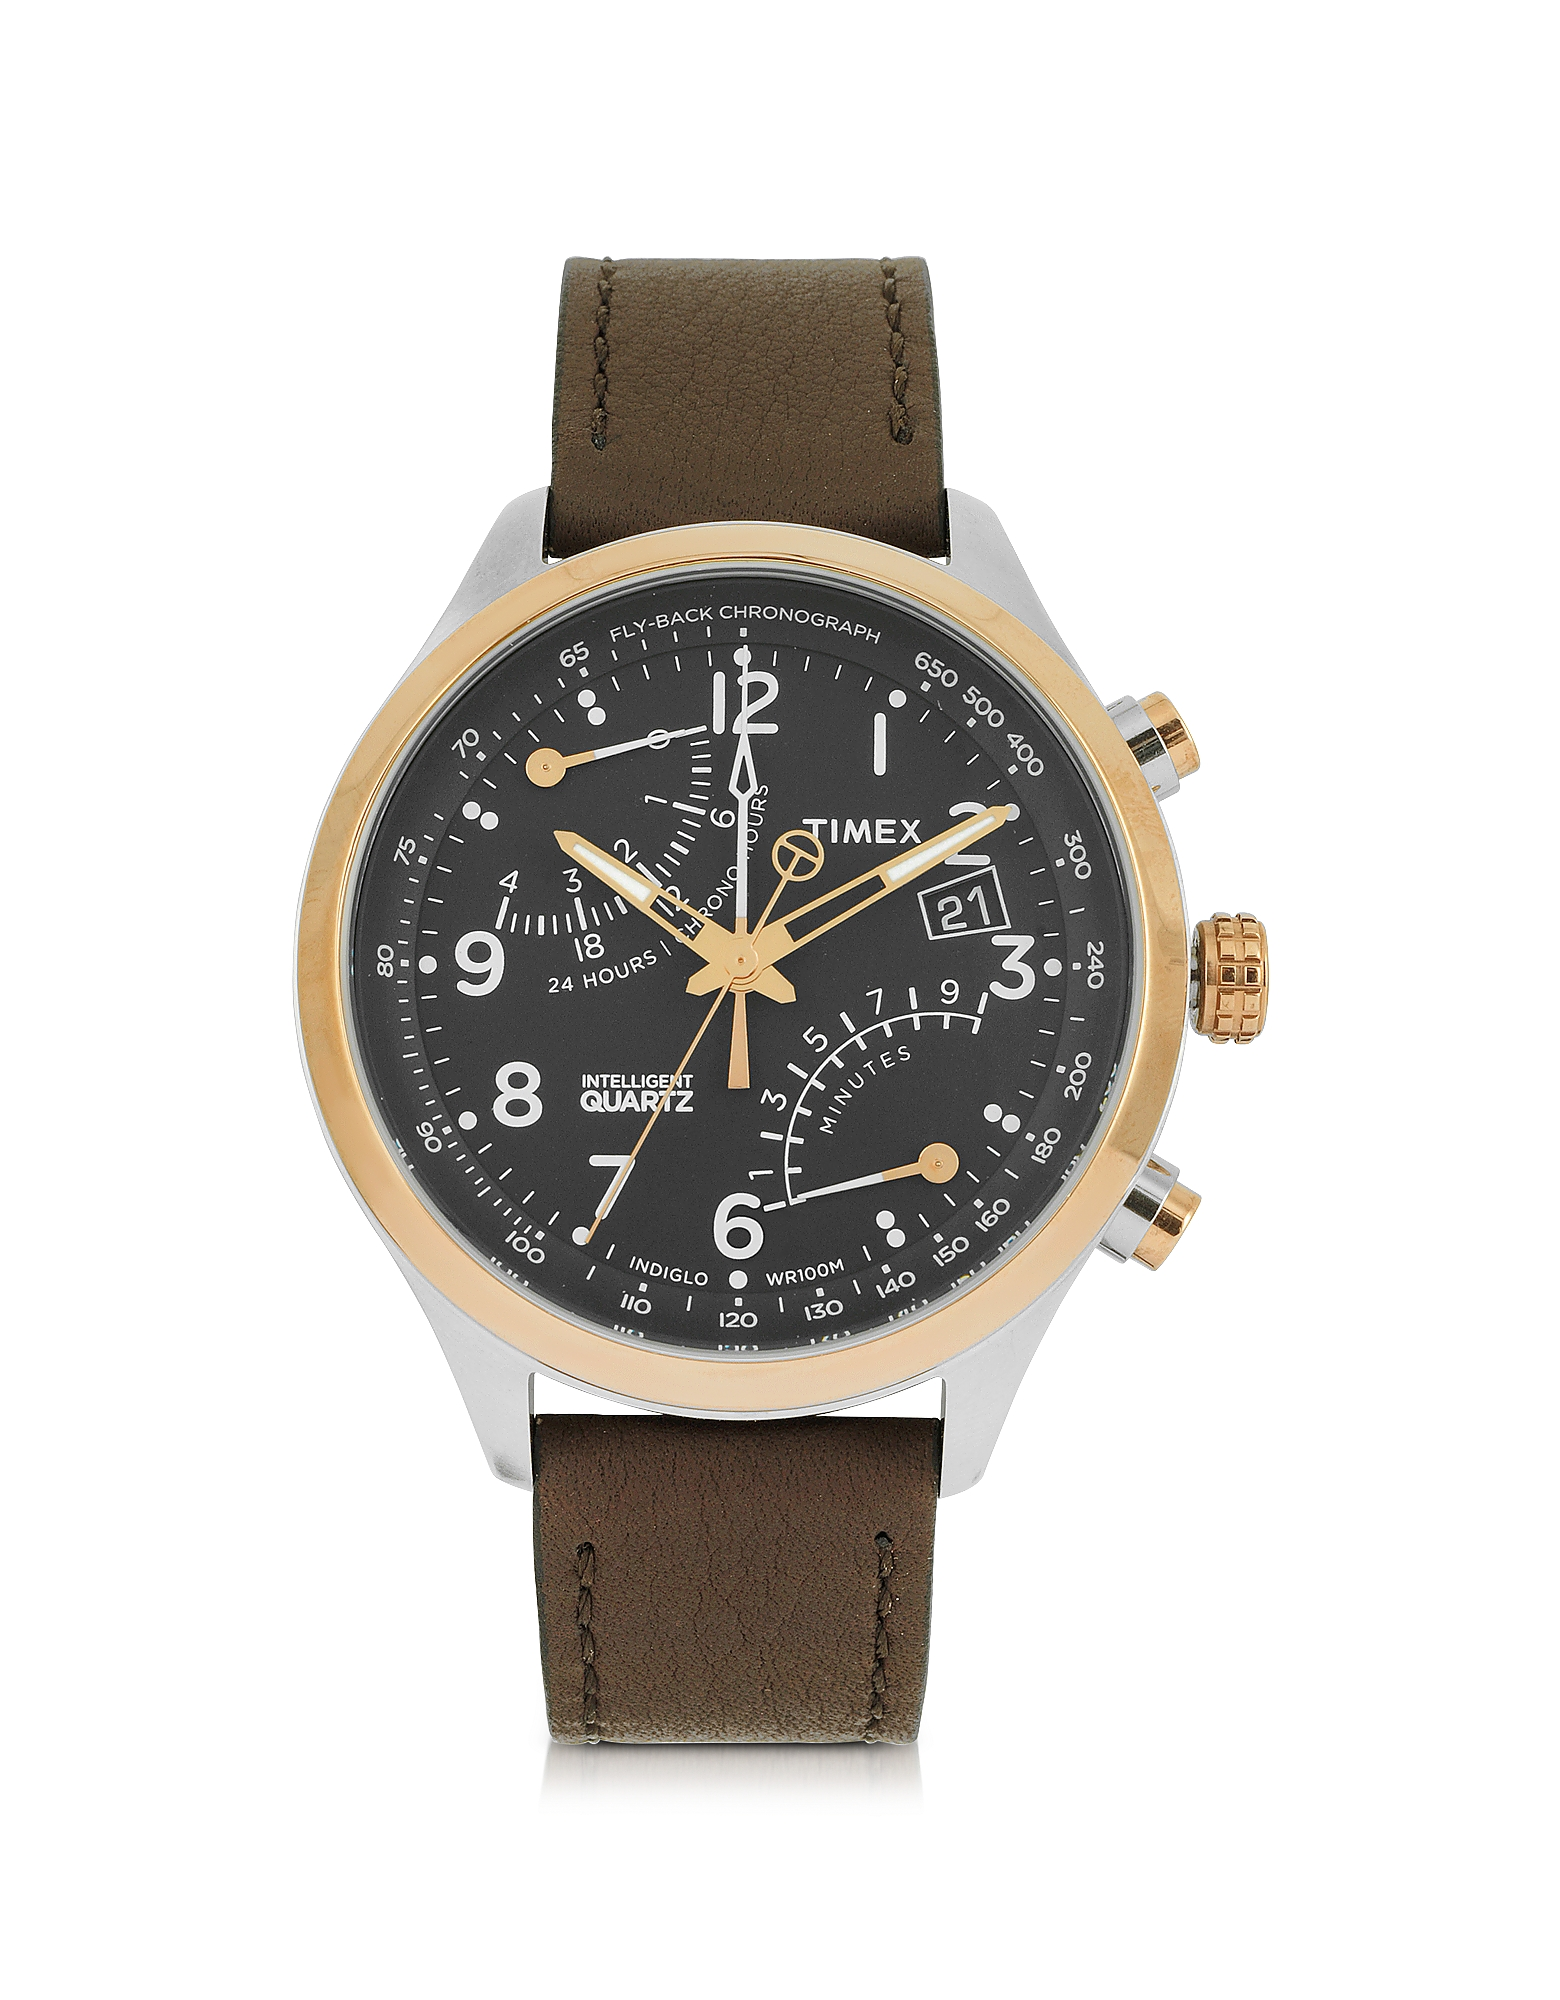 Timex Men's Watches, Fly Back Chrono Stainless Steel Case and Leather Strap Men's Watch